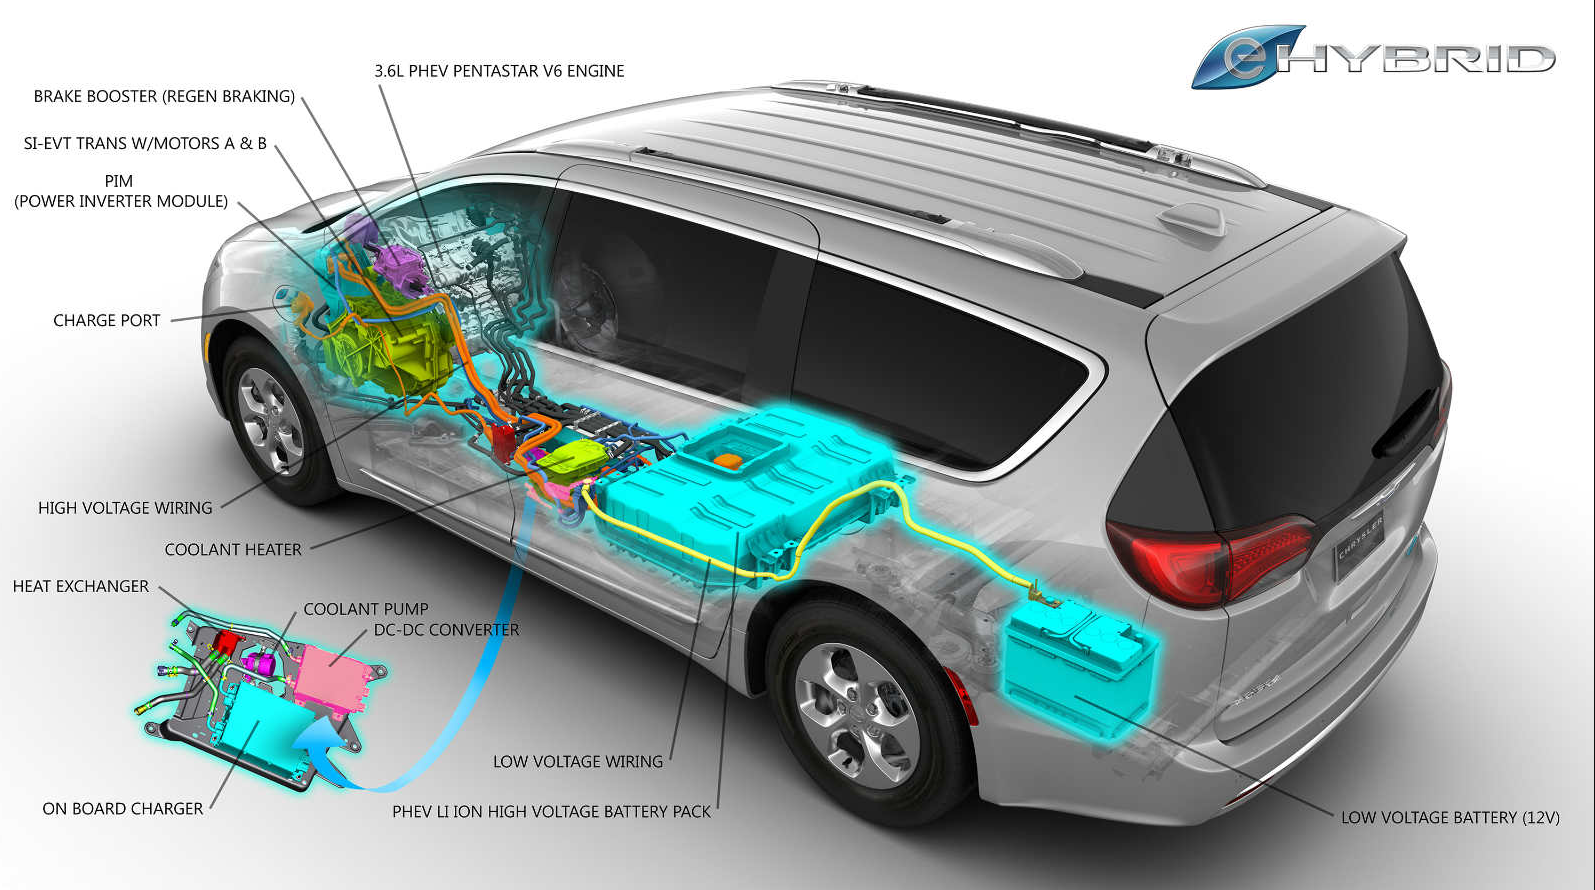 2018 Chrysler Pacifica hybrid performance